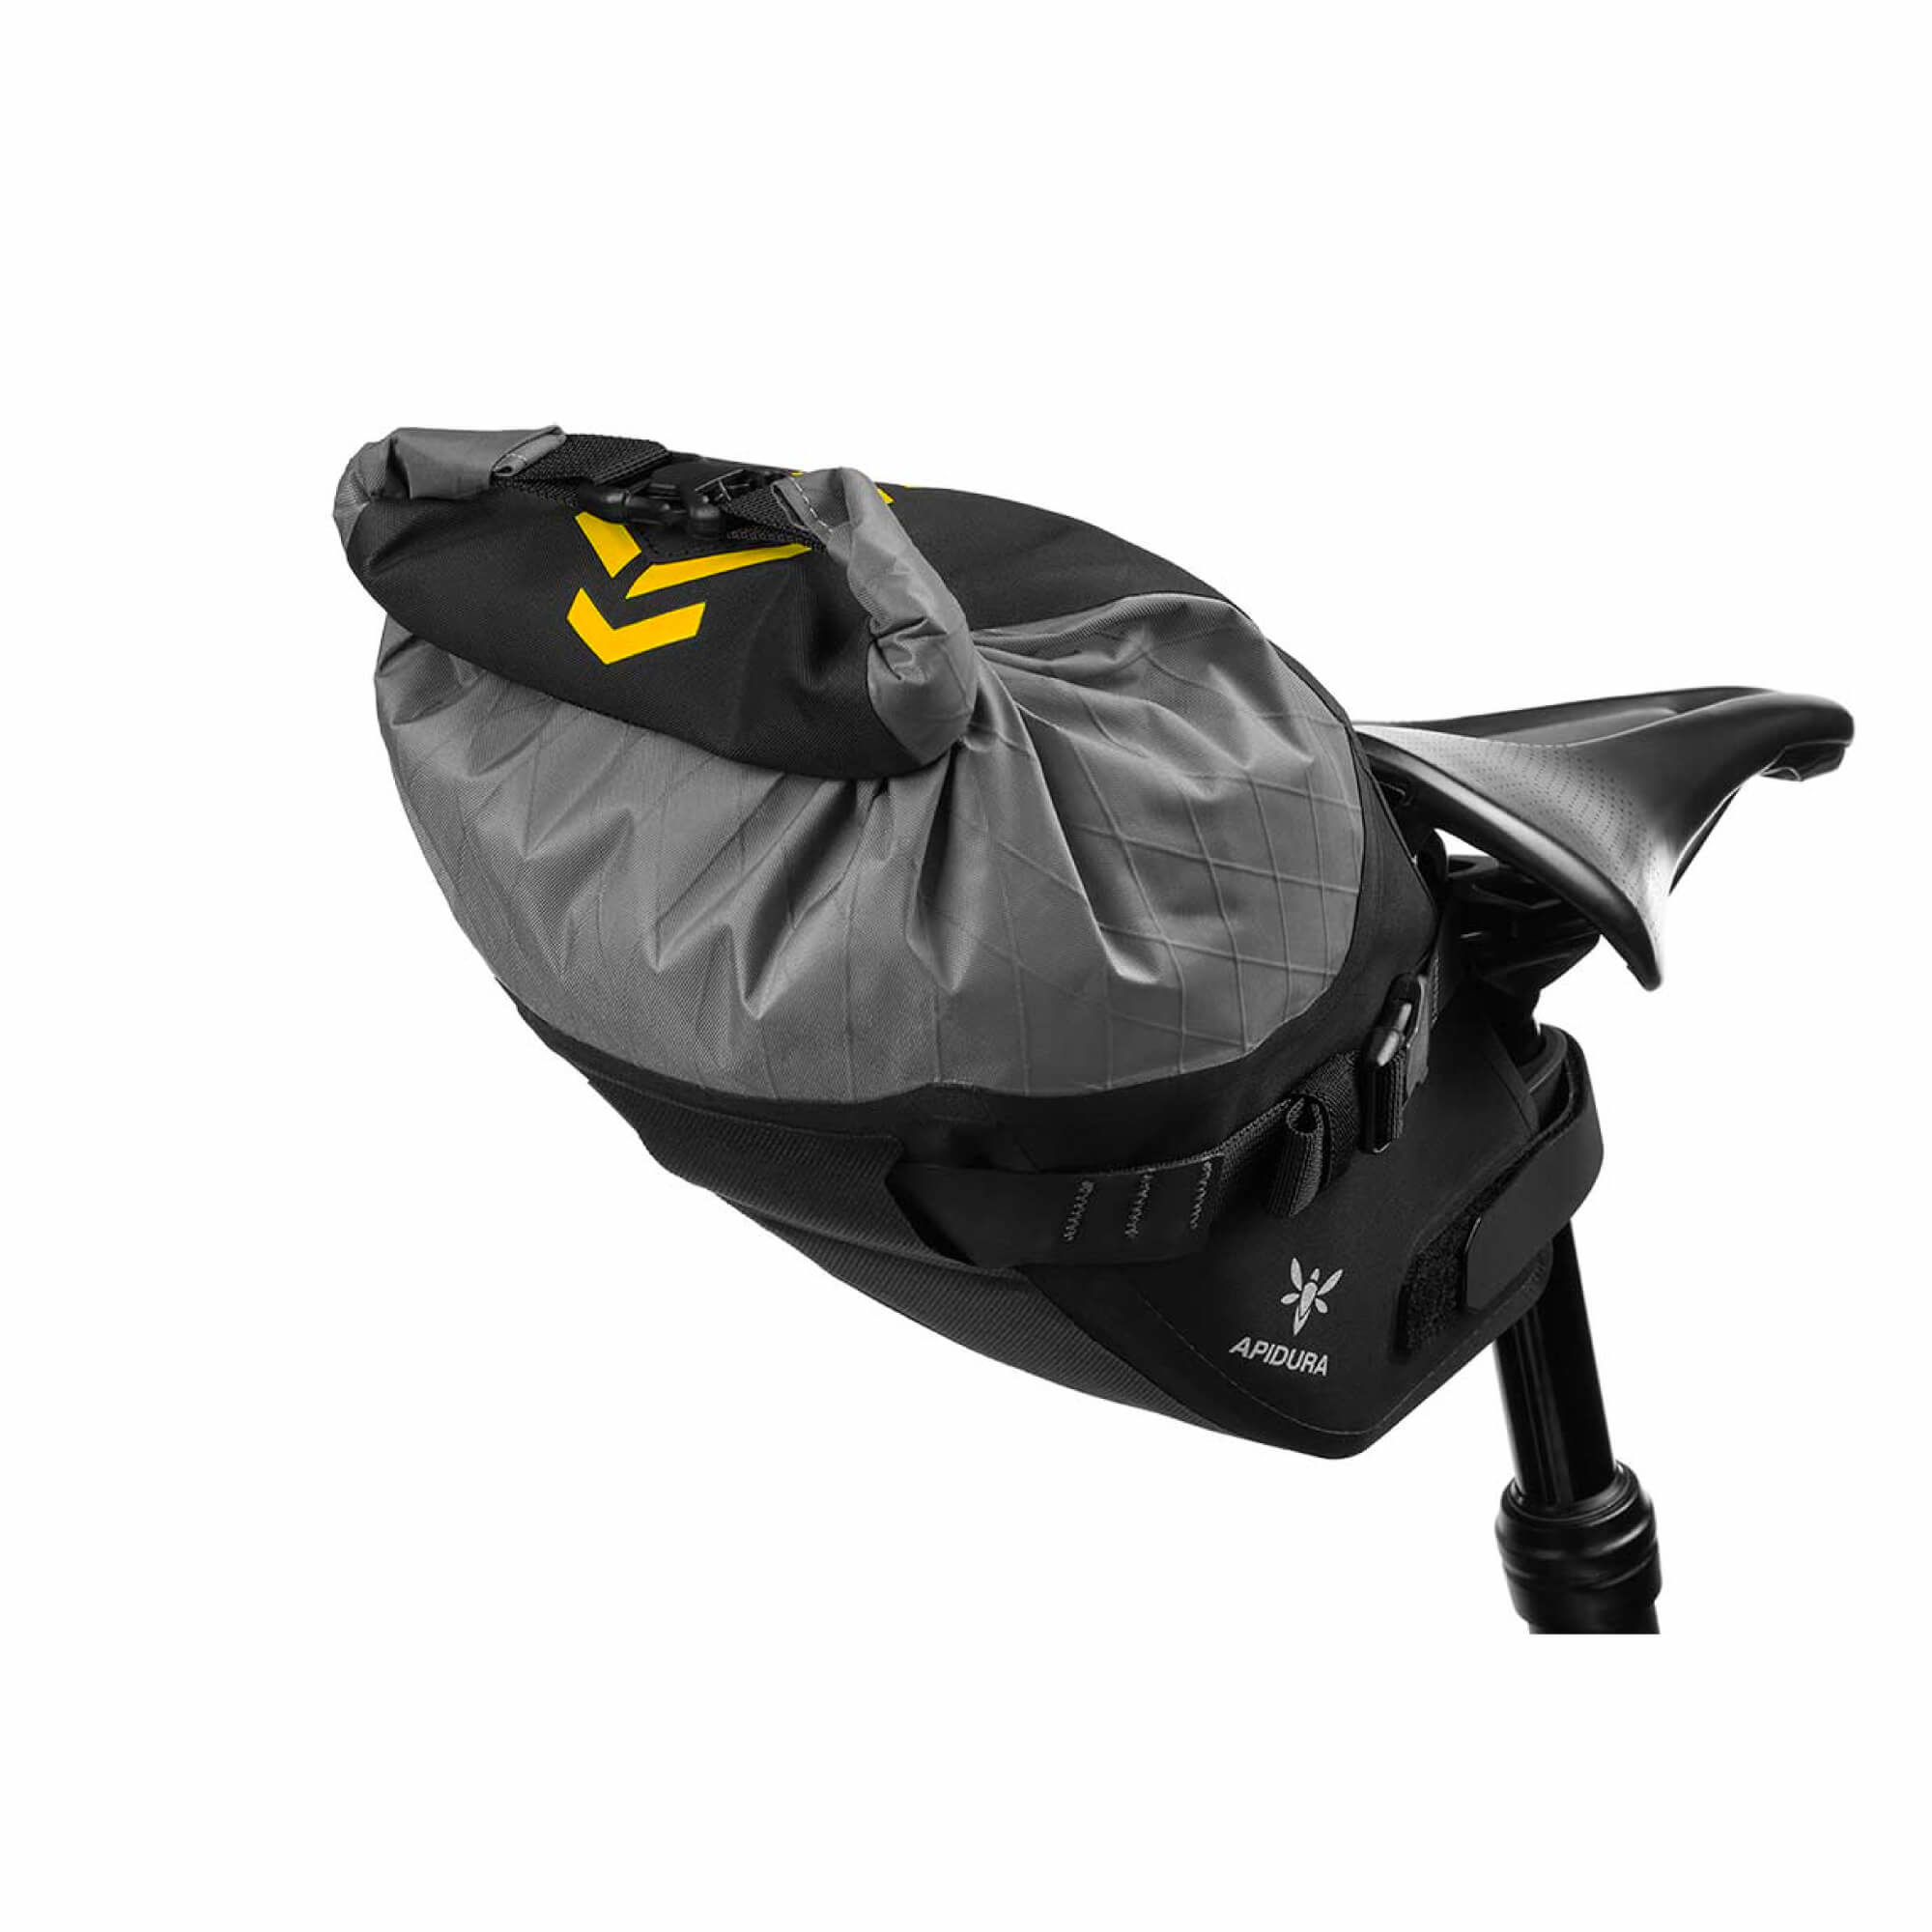 Backcountry2 Saddle Pack 4.5 L-5